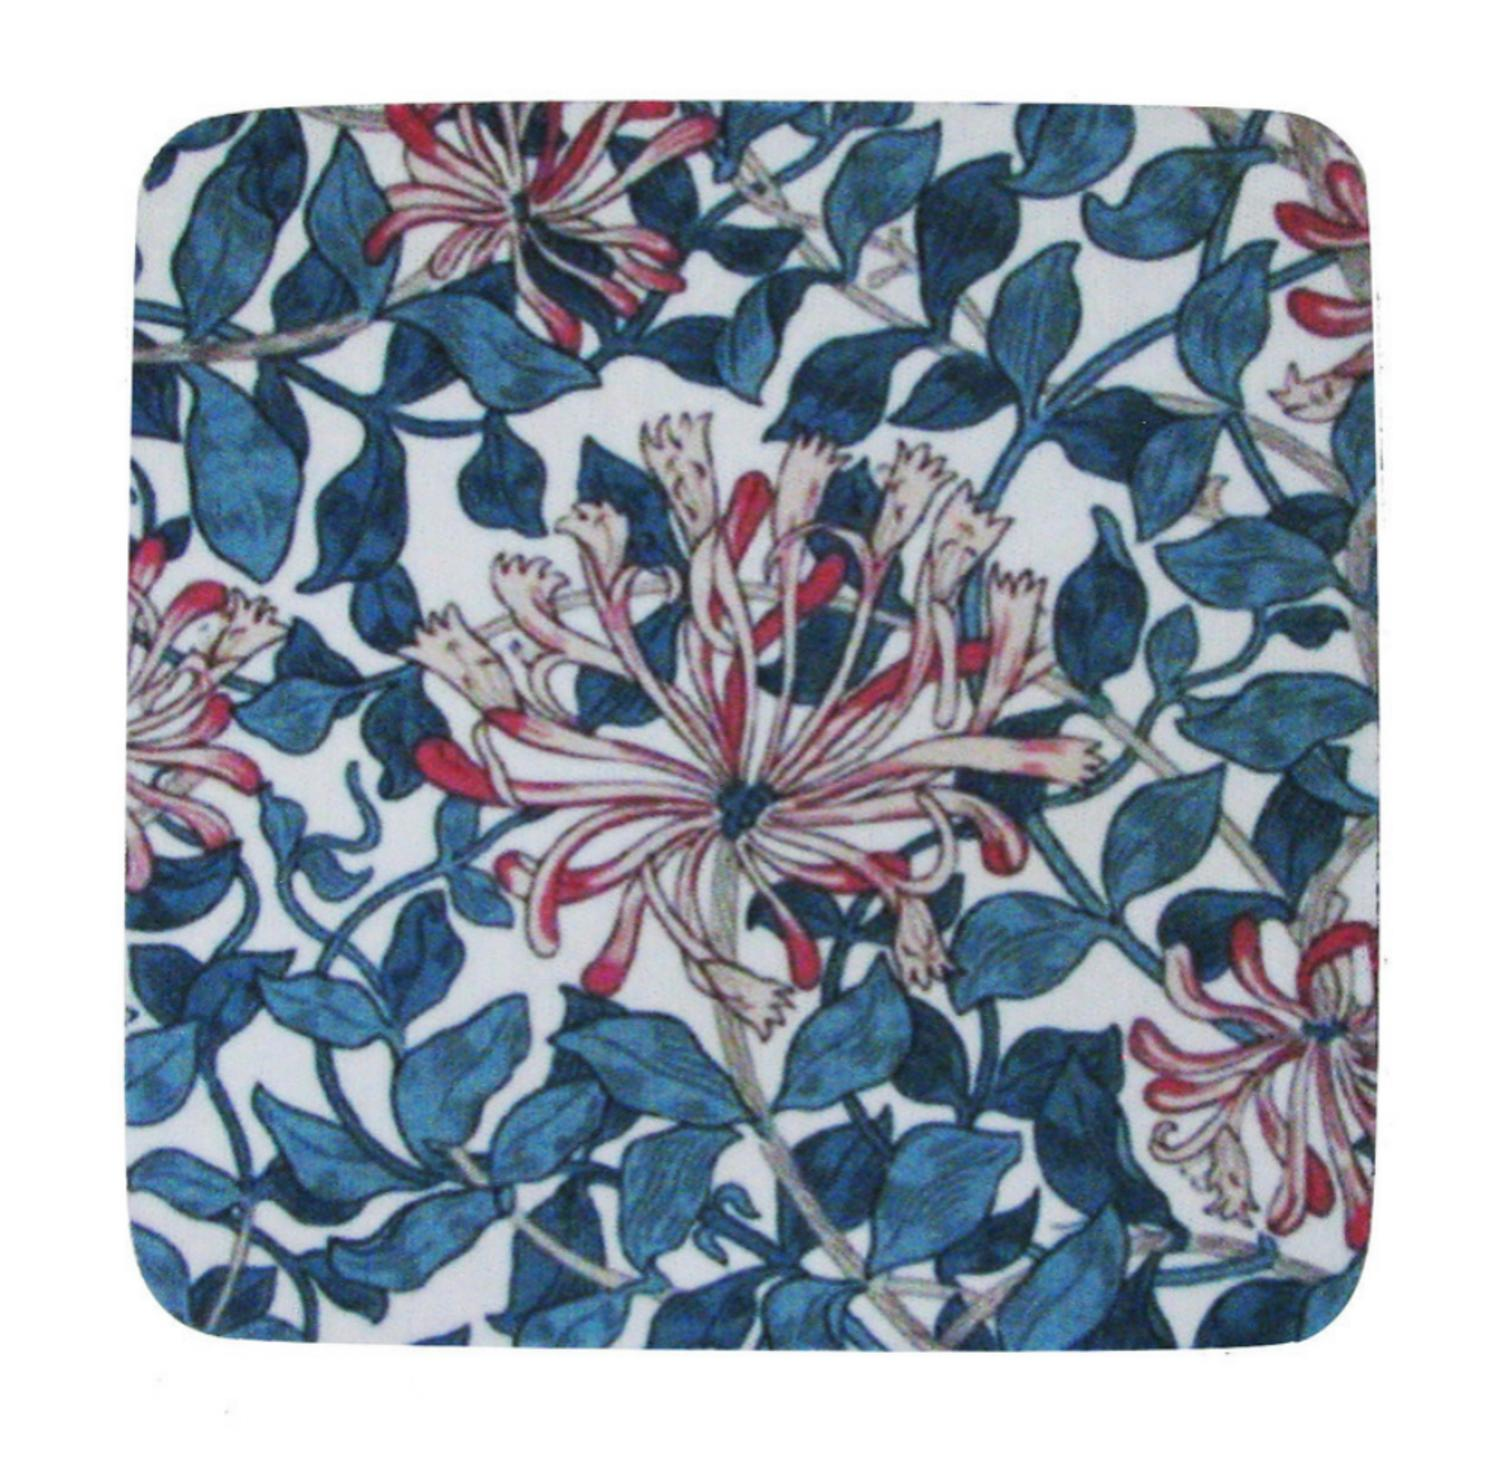 Pack of 8 Absorbent Blue and Red Abstract Floral Print Cocktail Drink Coasters 4""